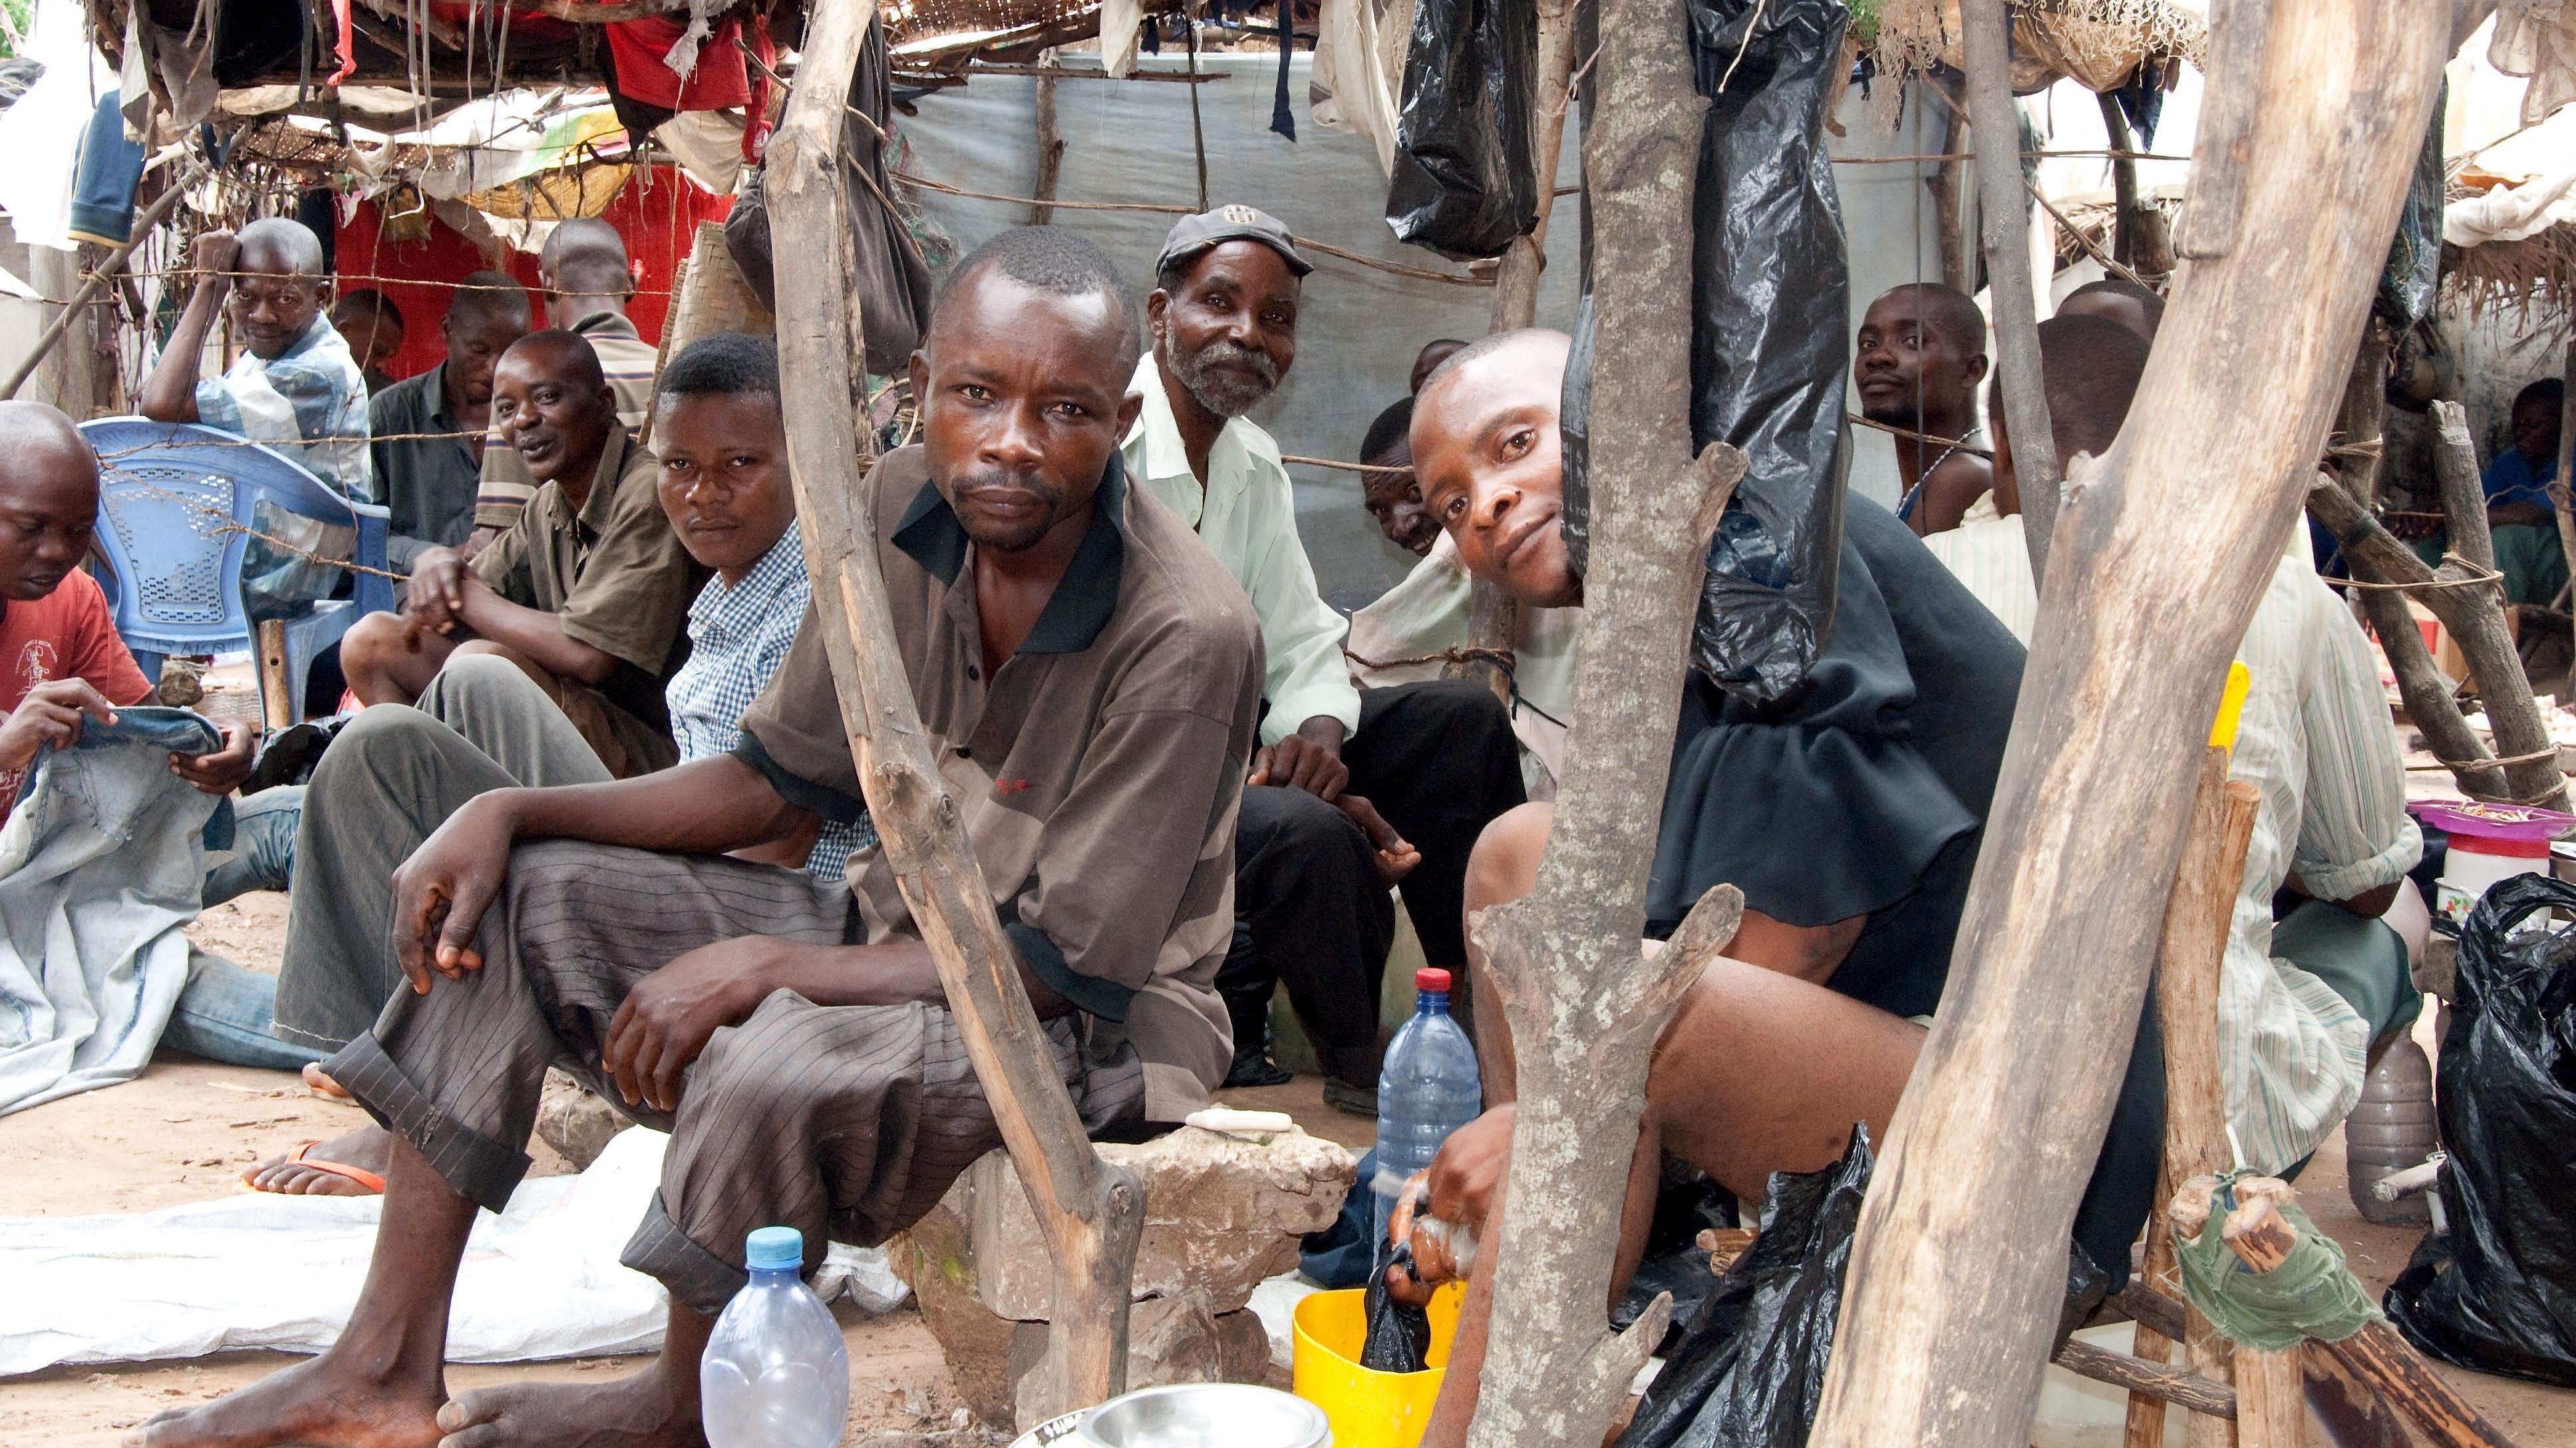 Why We Need Your Help to Provide Aid to Prisoners in the Congo